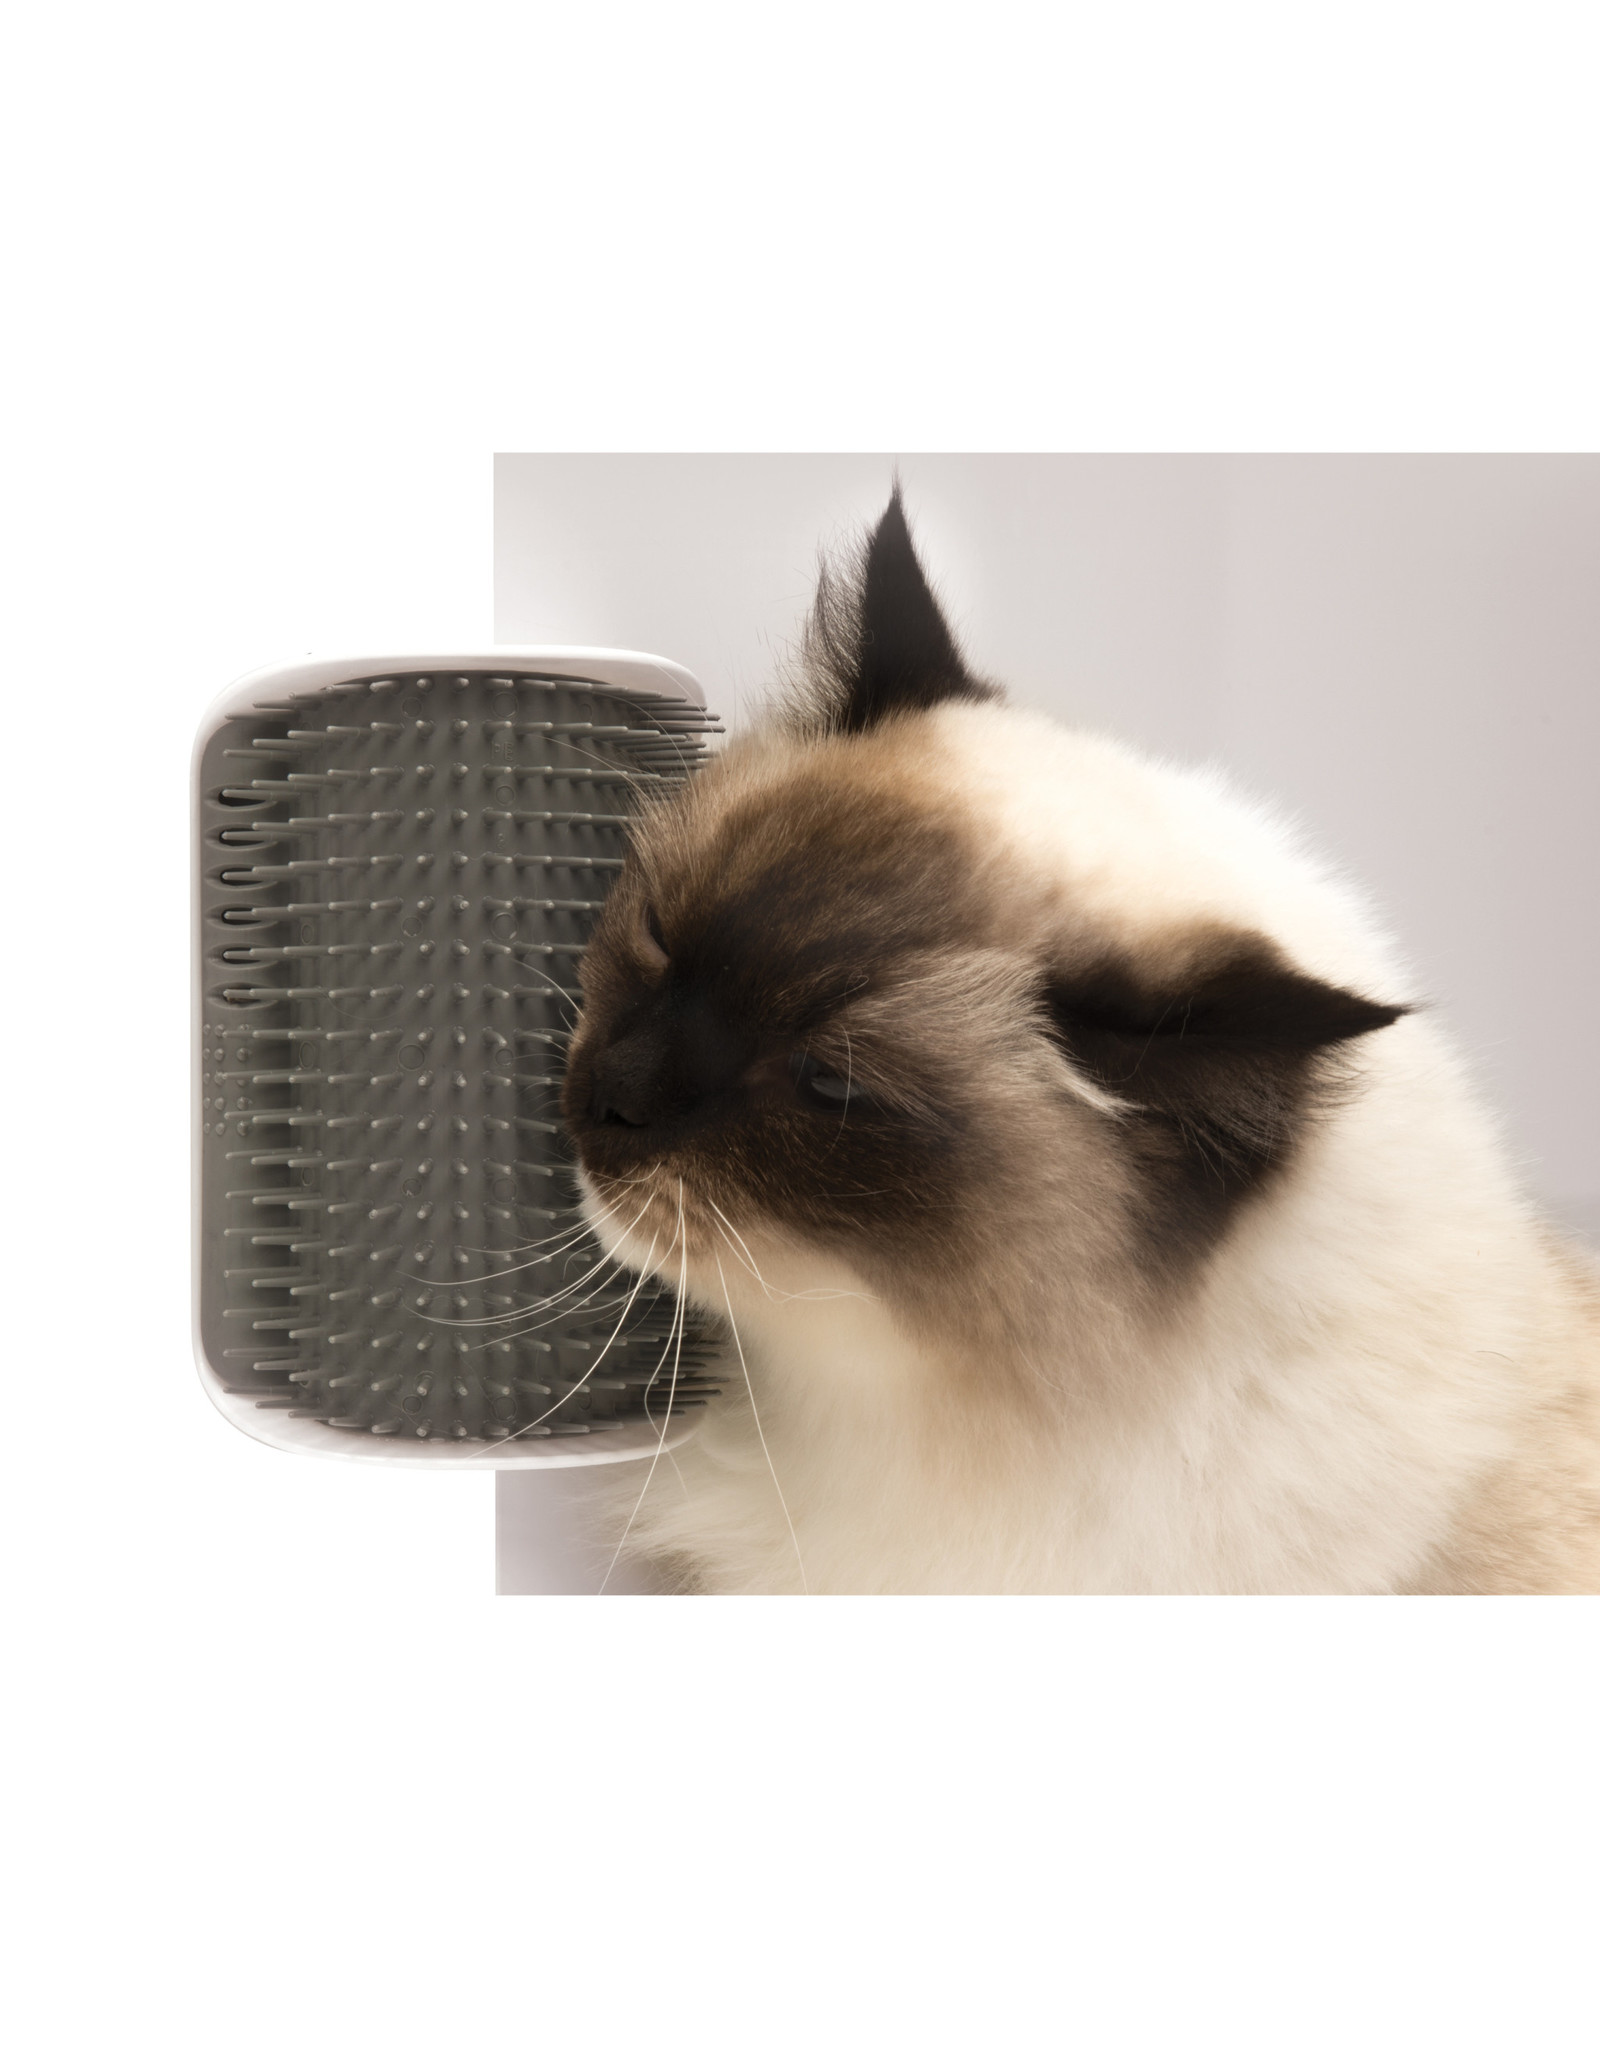 CT - Catit 2.0 Catit Senses 2.0 Self - Groomer